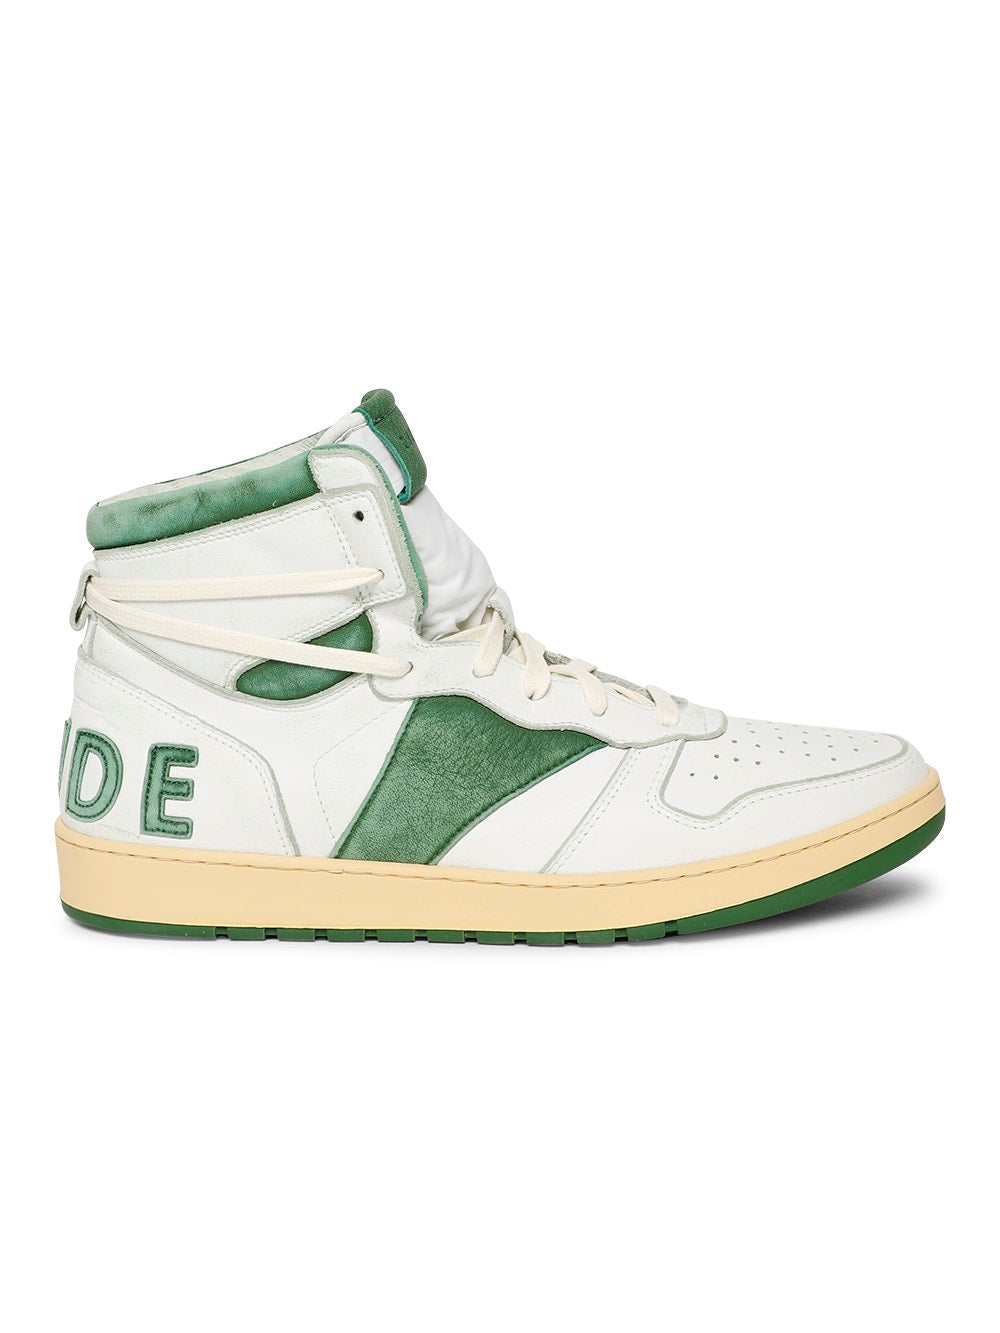 White & Green Rhecess High Top Sneakers